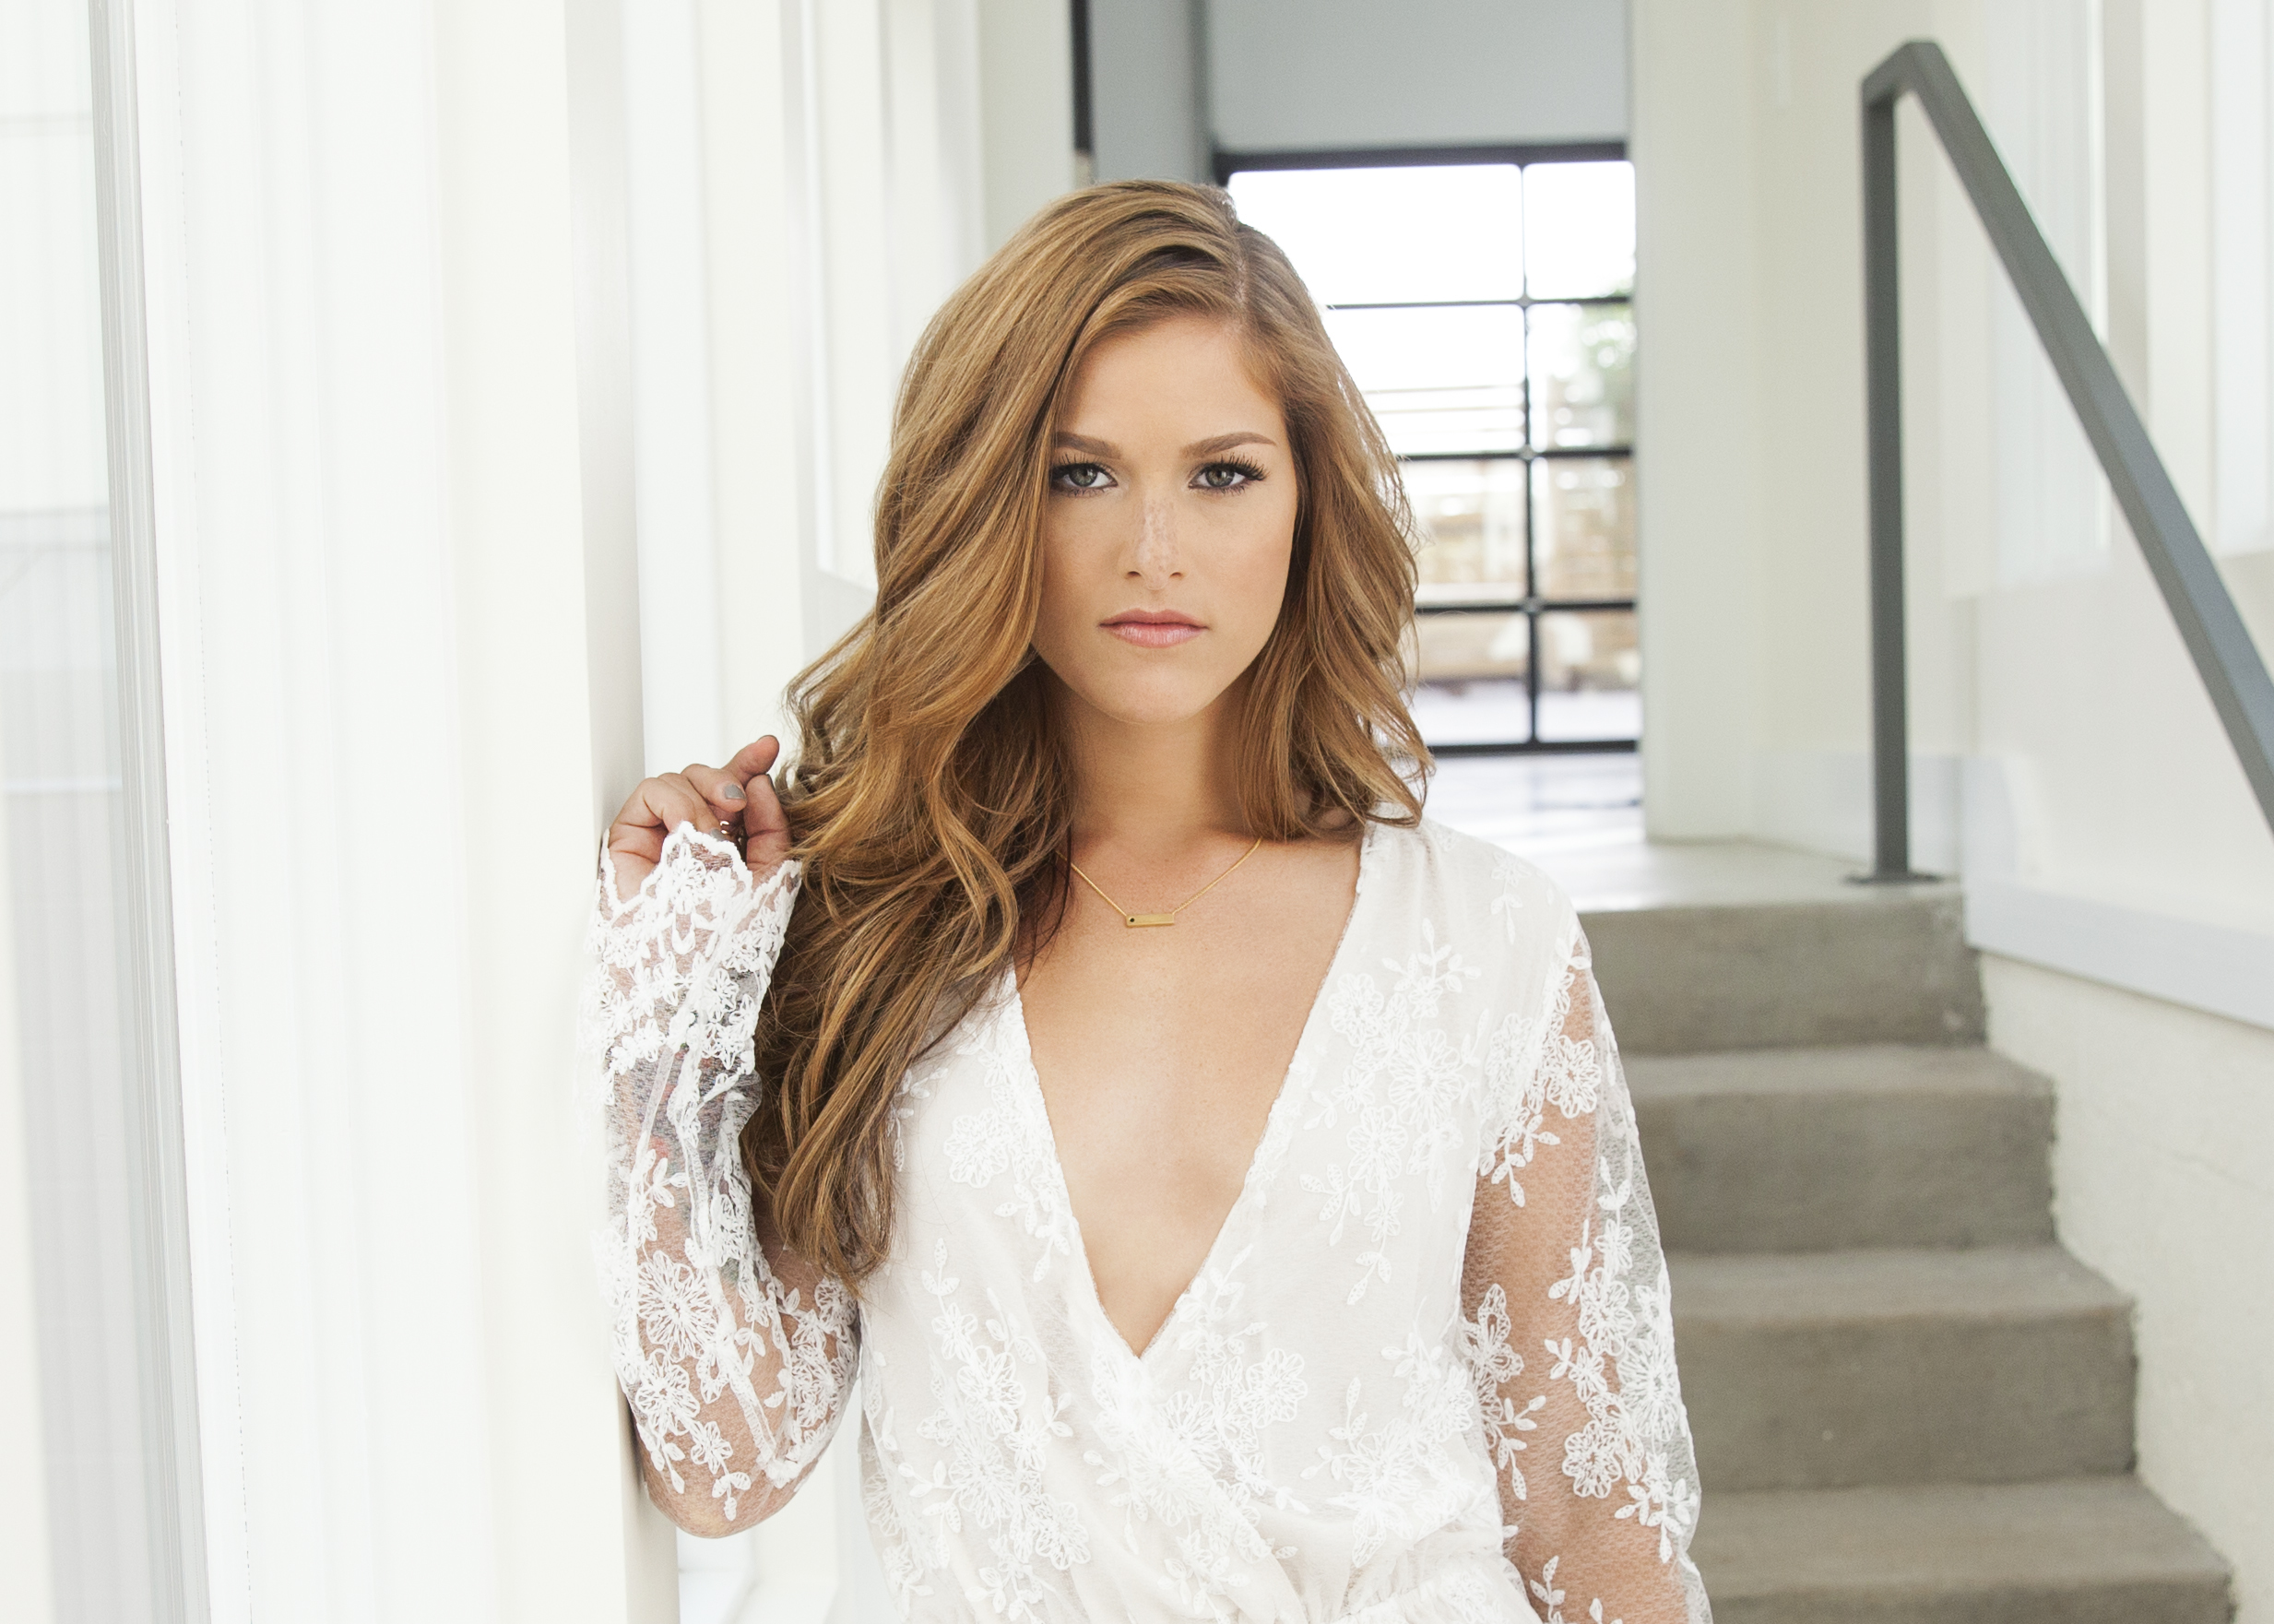 Cassadee Pope Wallpapers Hd